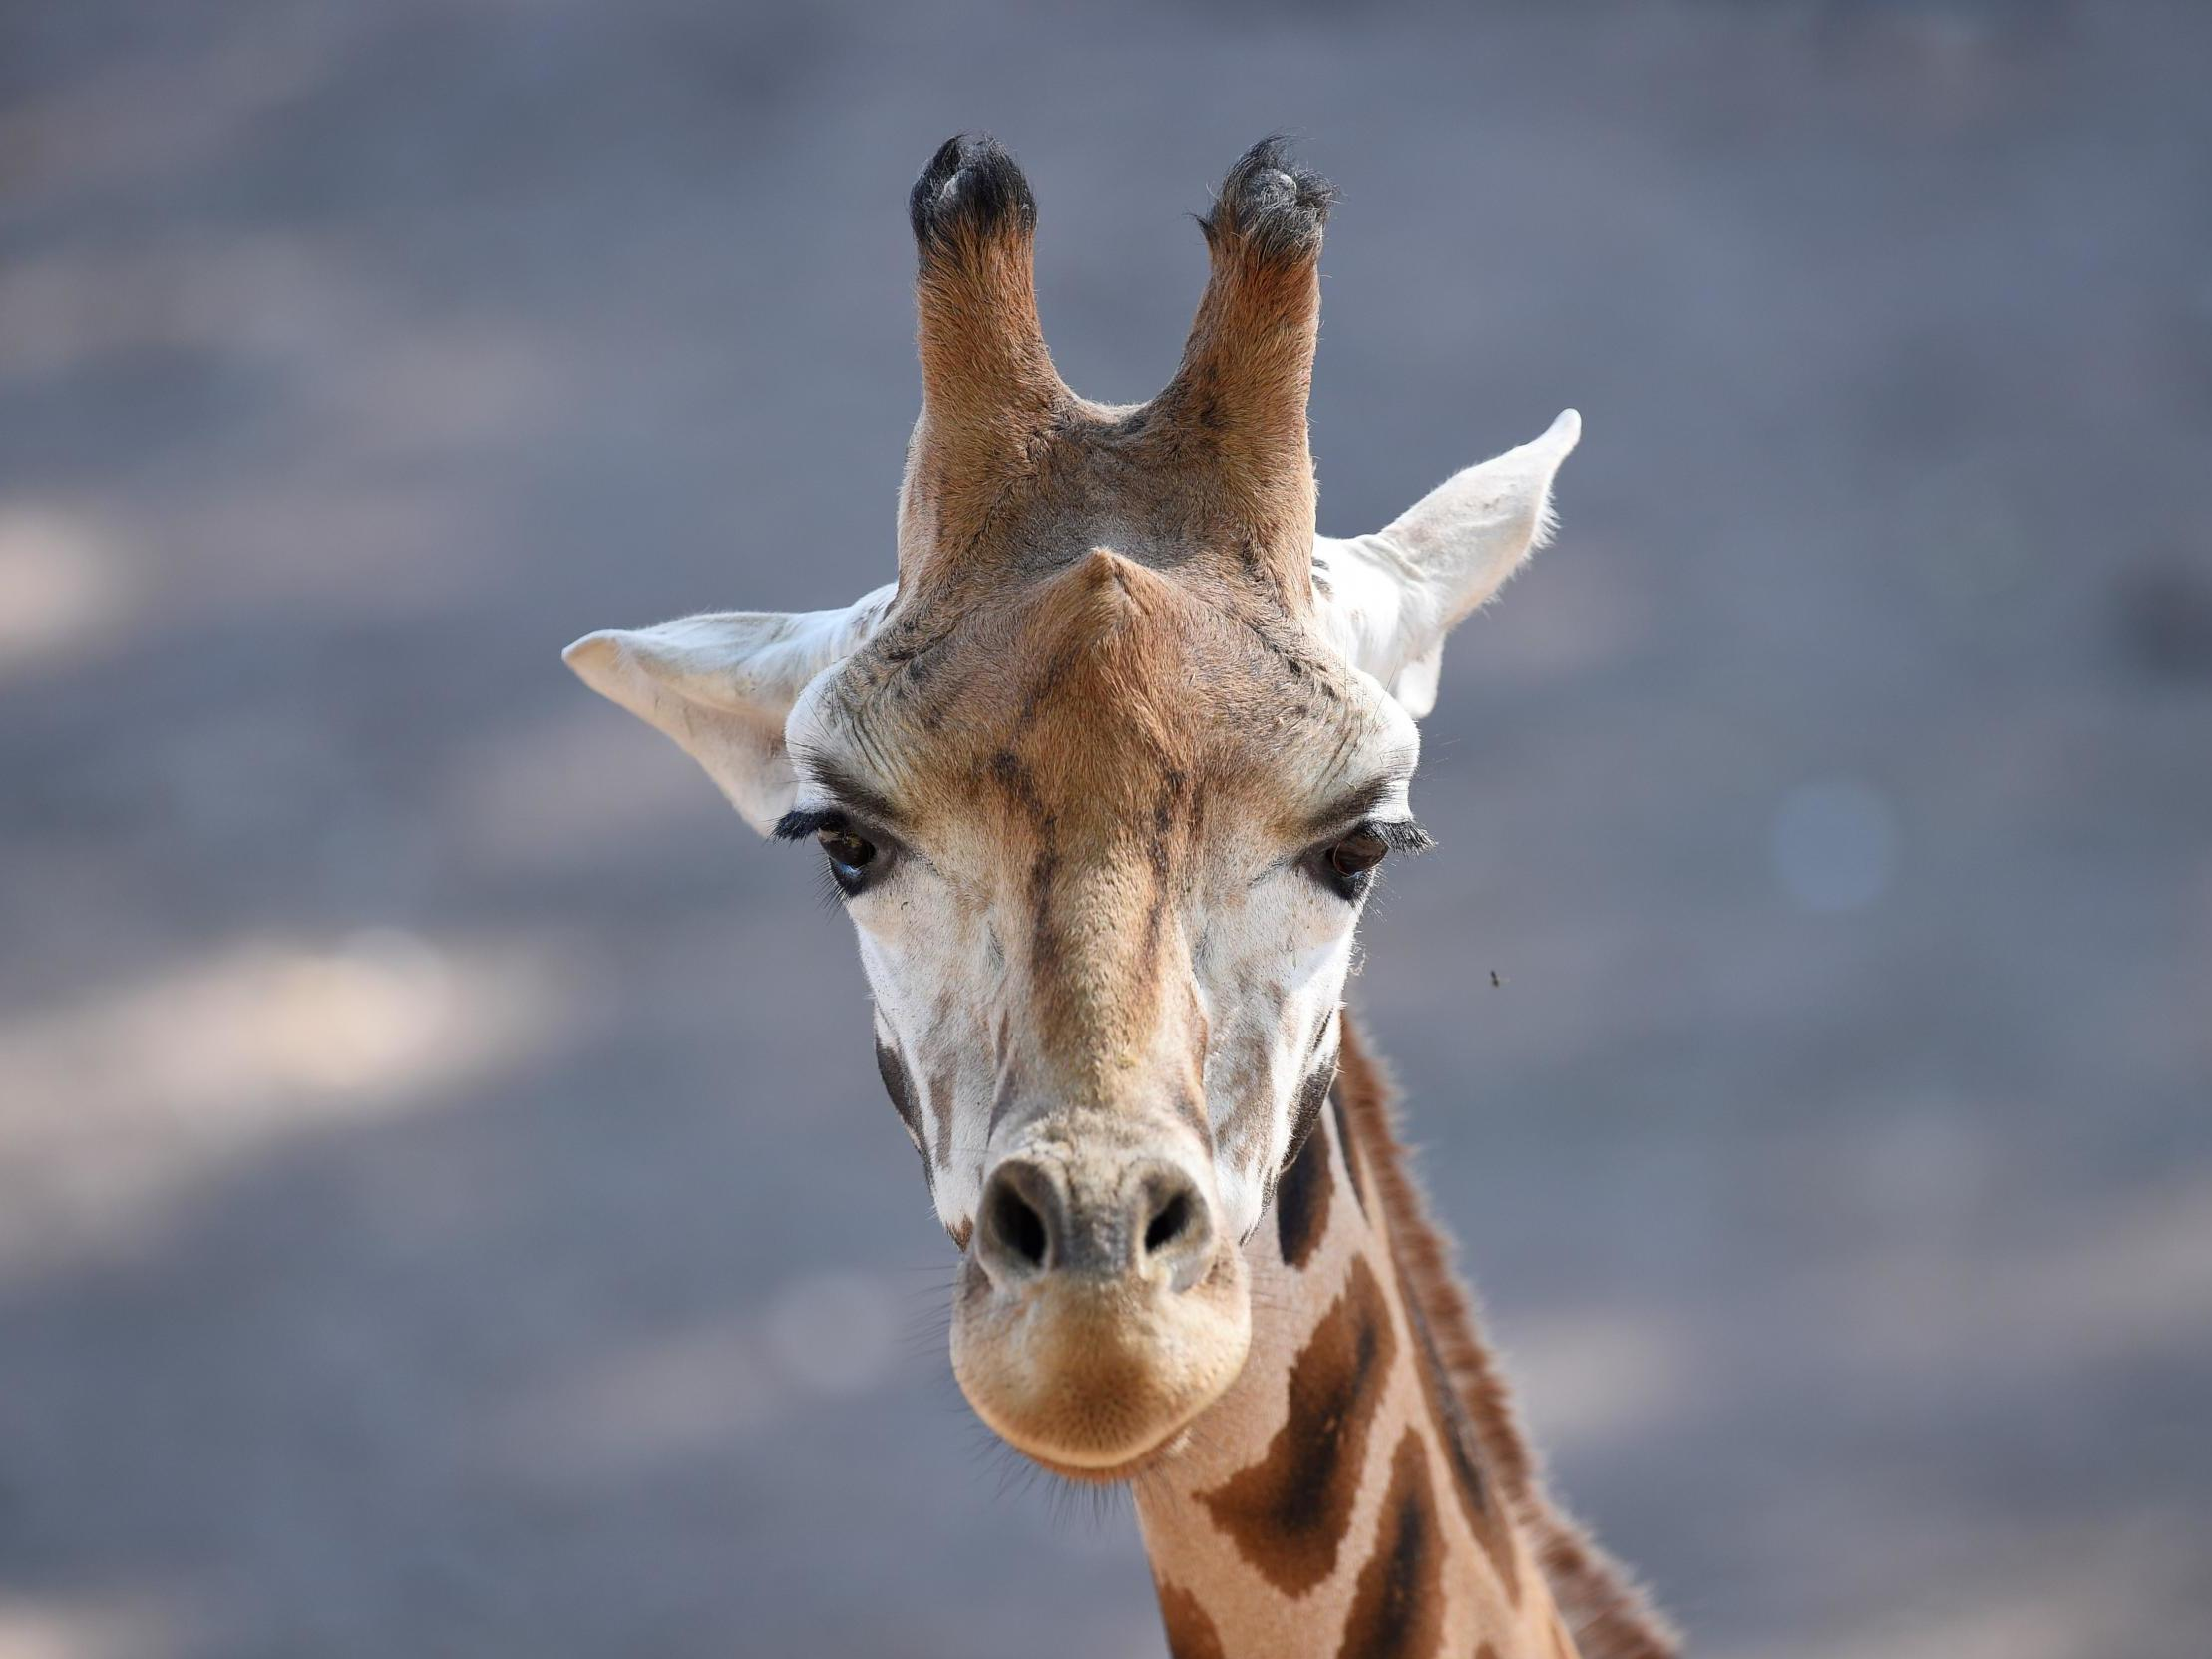 British hunters 'paying to kill endangered giraffes in Africa', campaigners say